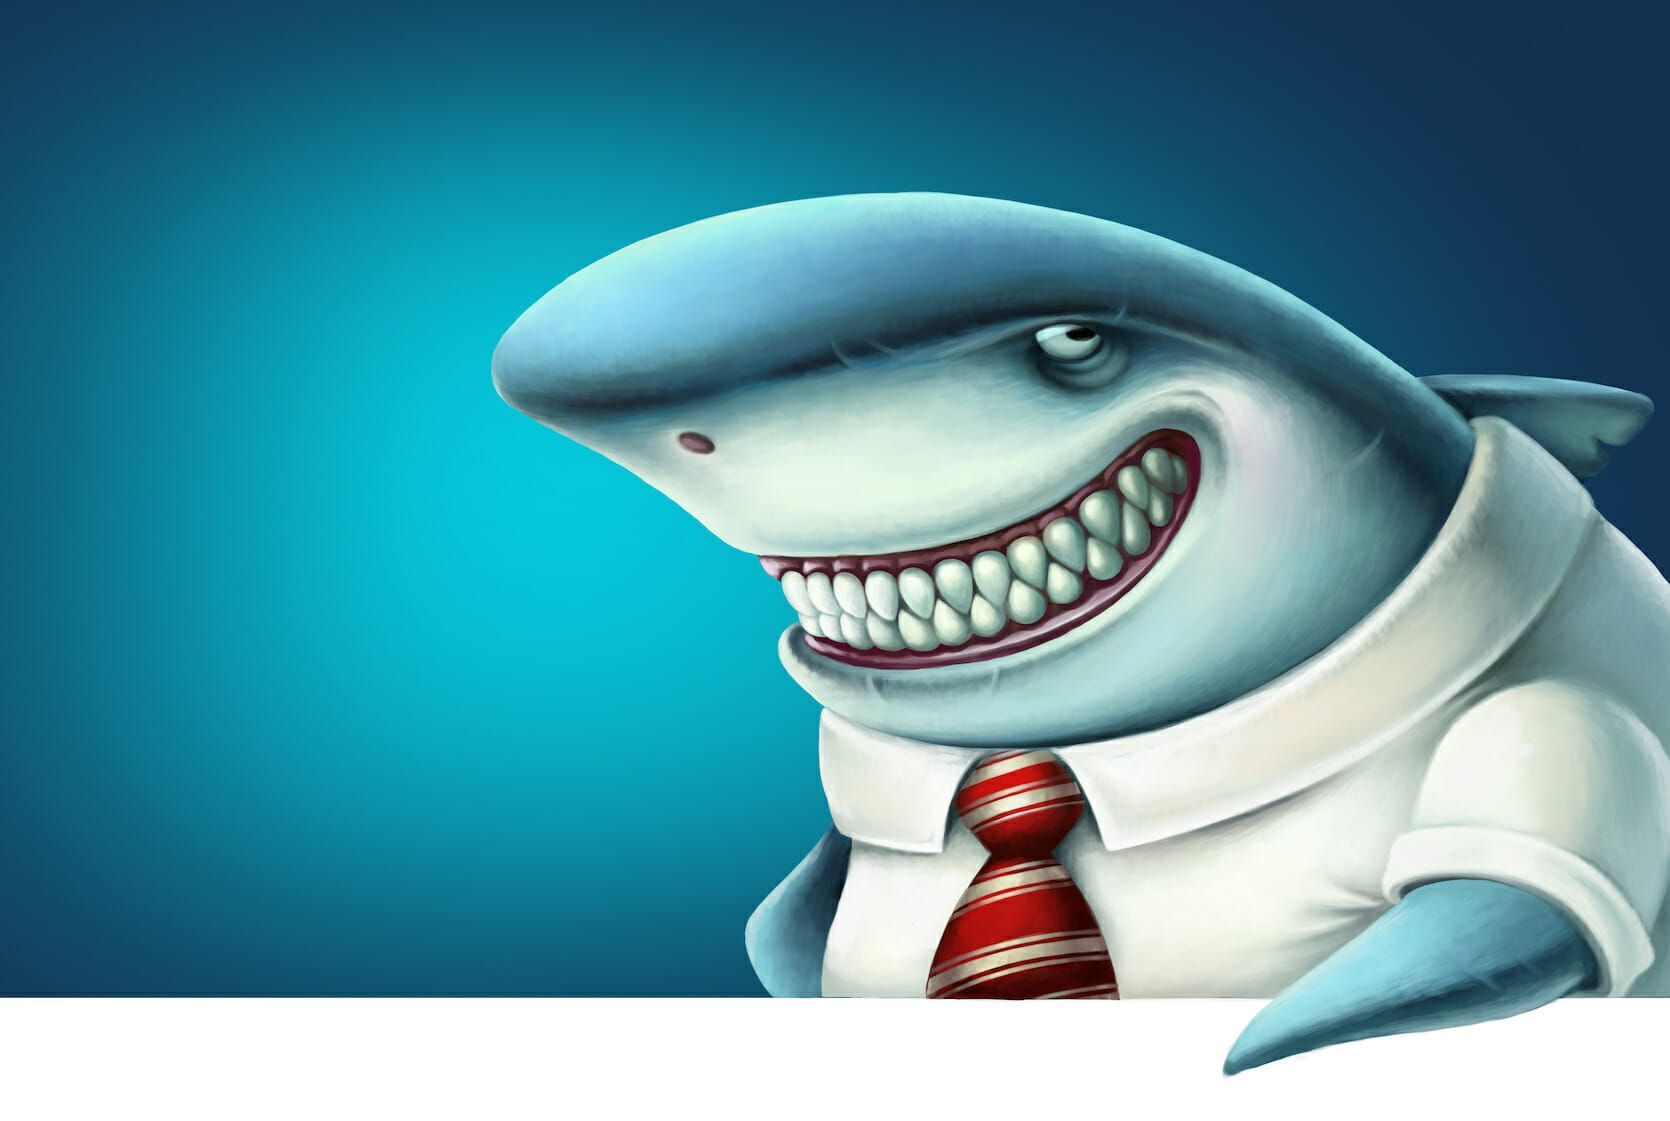 Shark repellent - Shark with tie